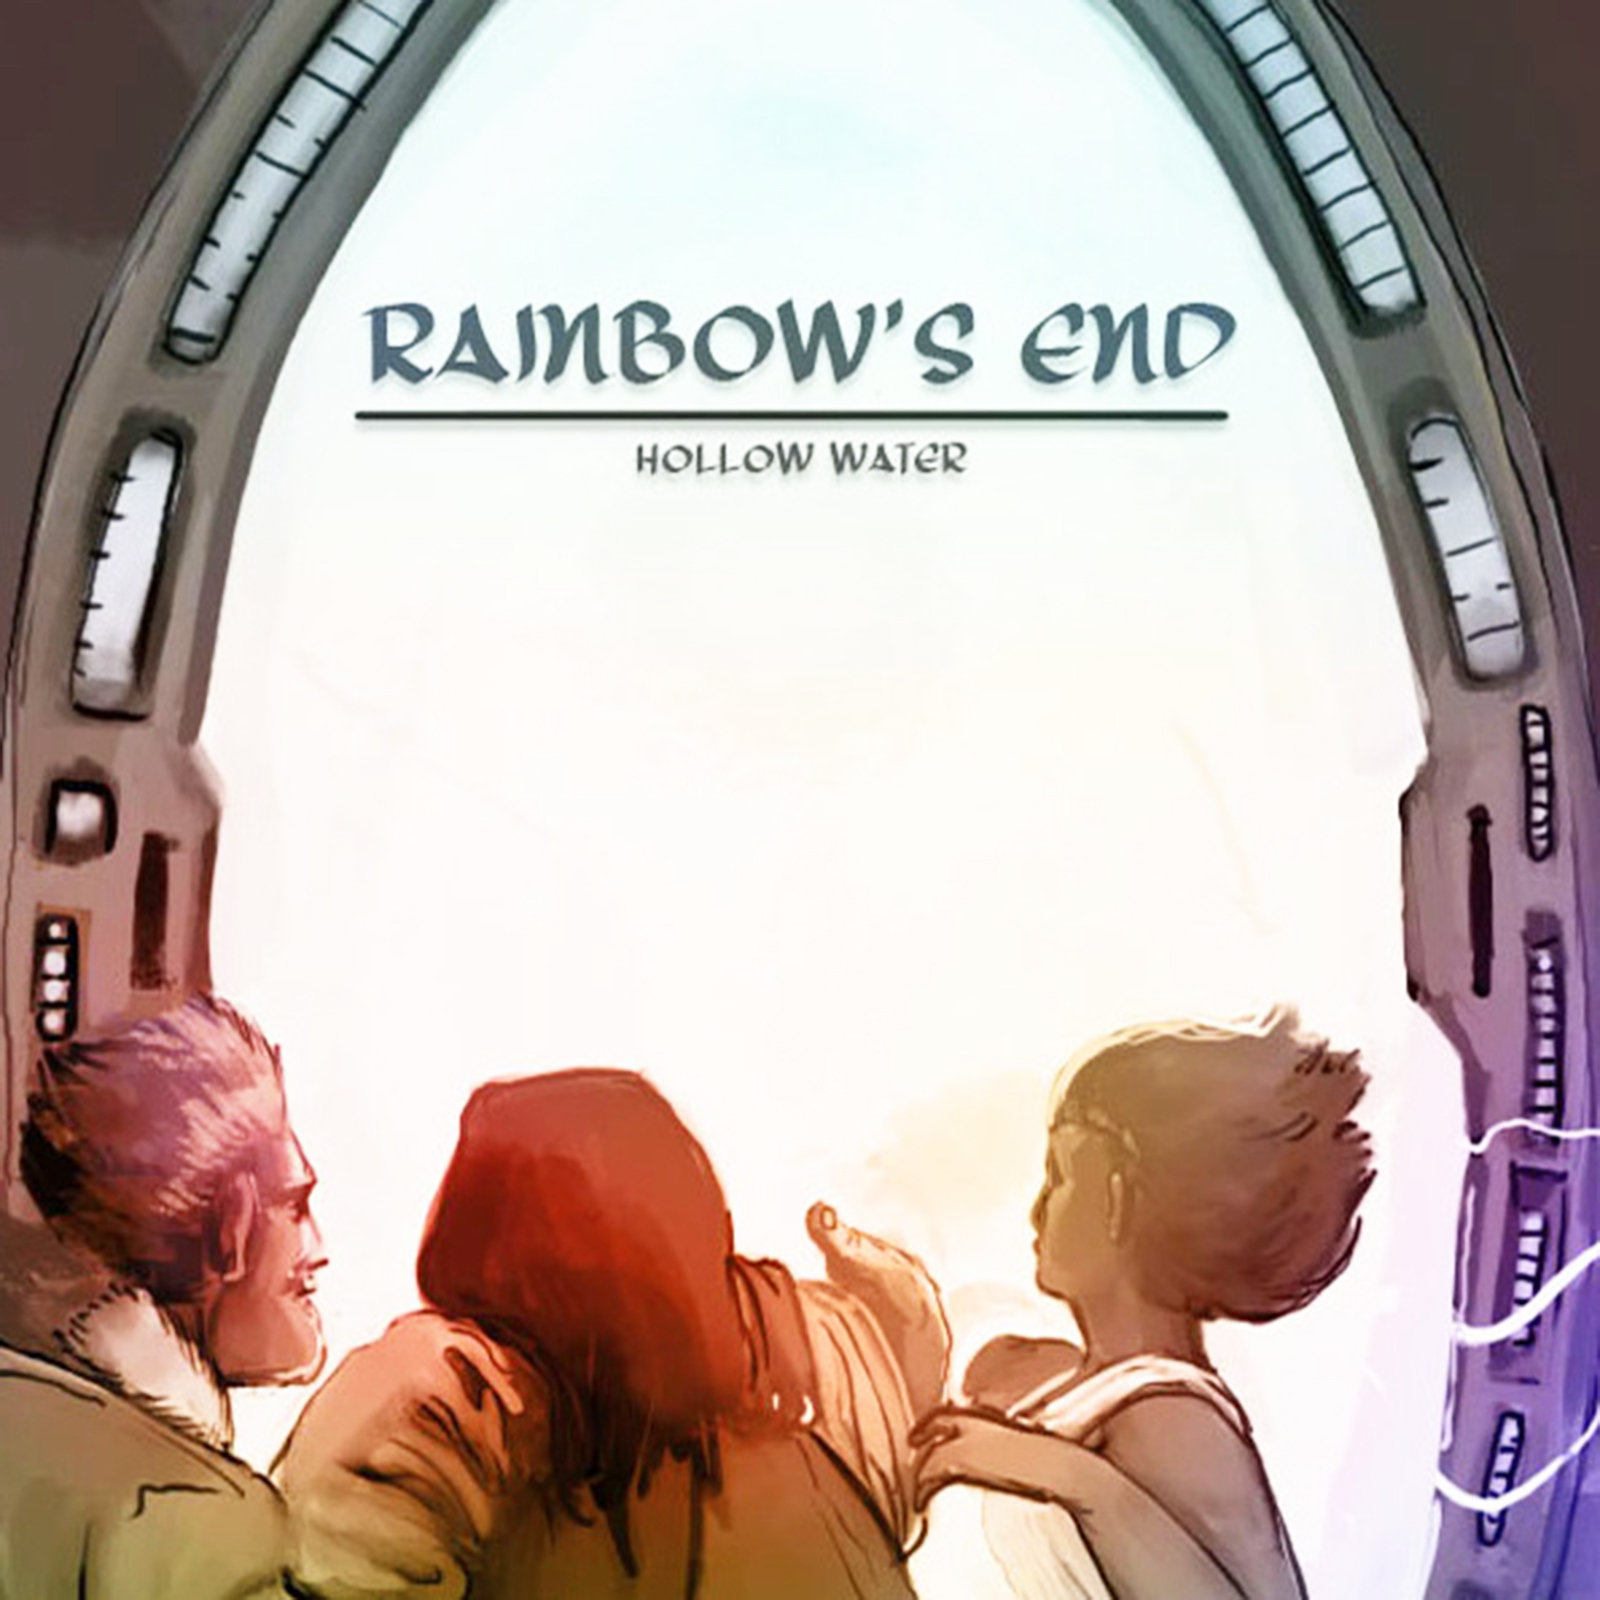 Rainbow's End - HOLLOW WATER